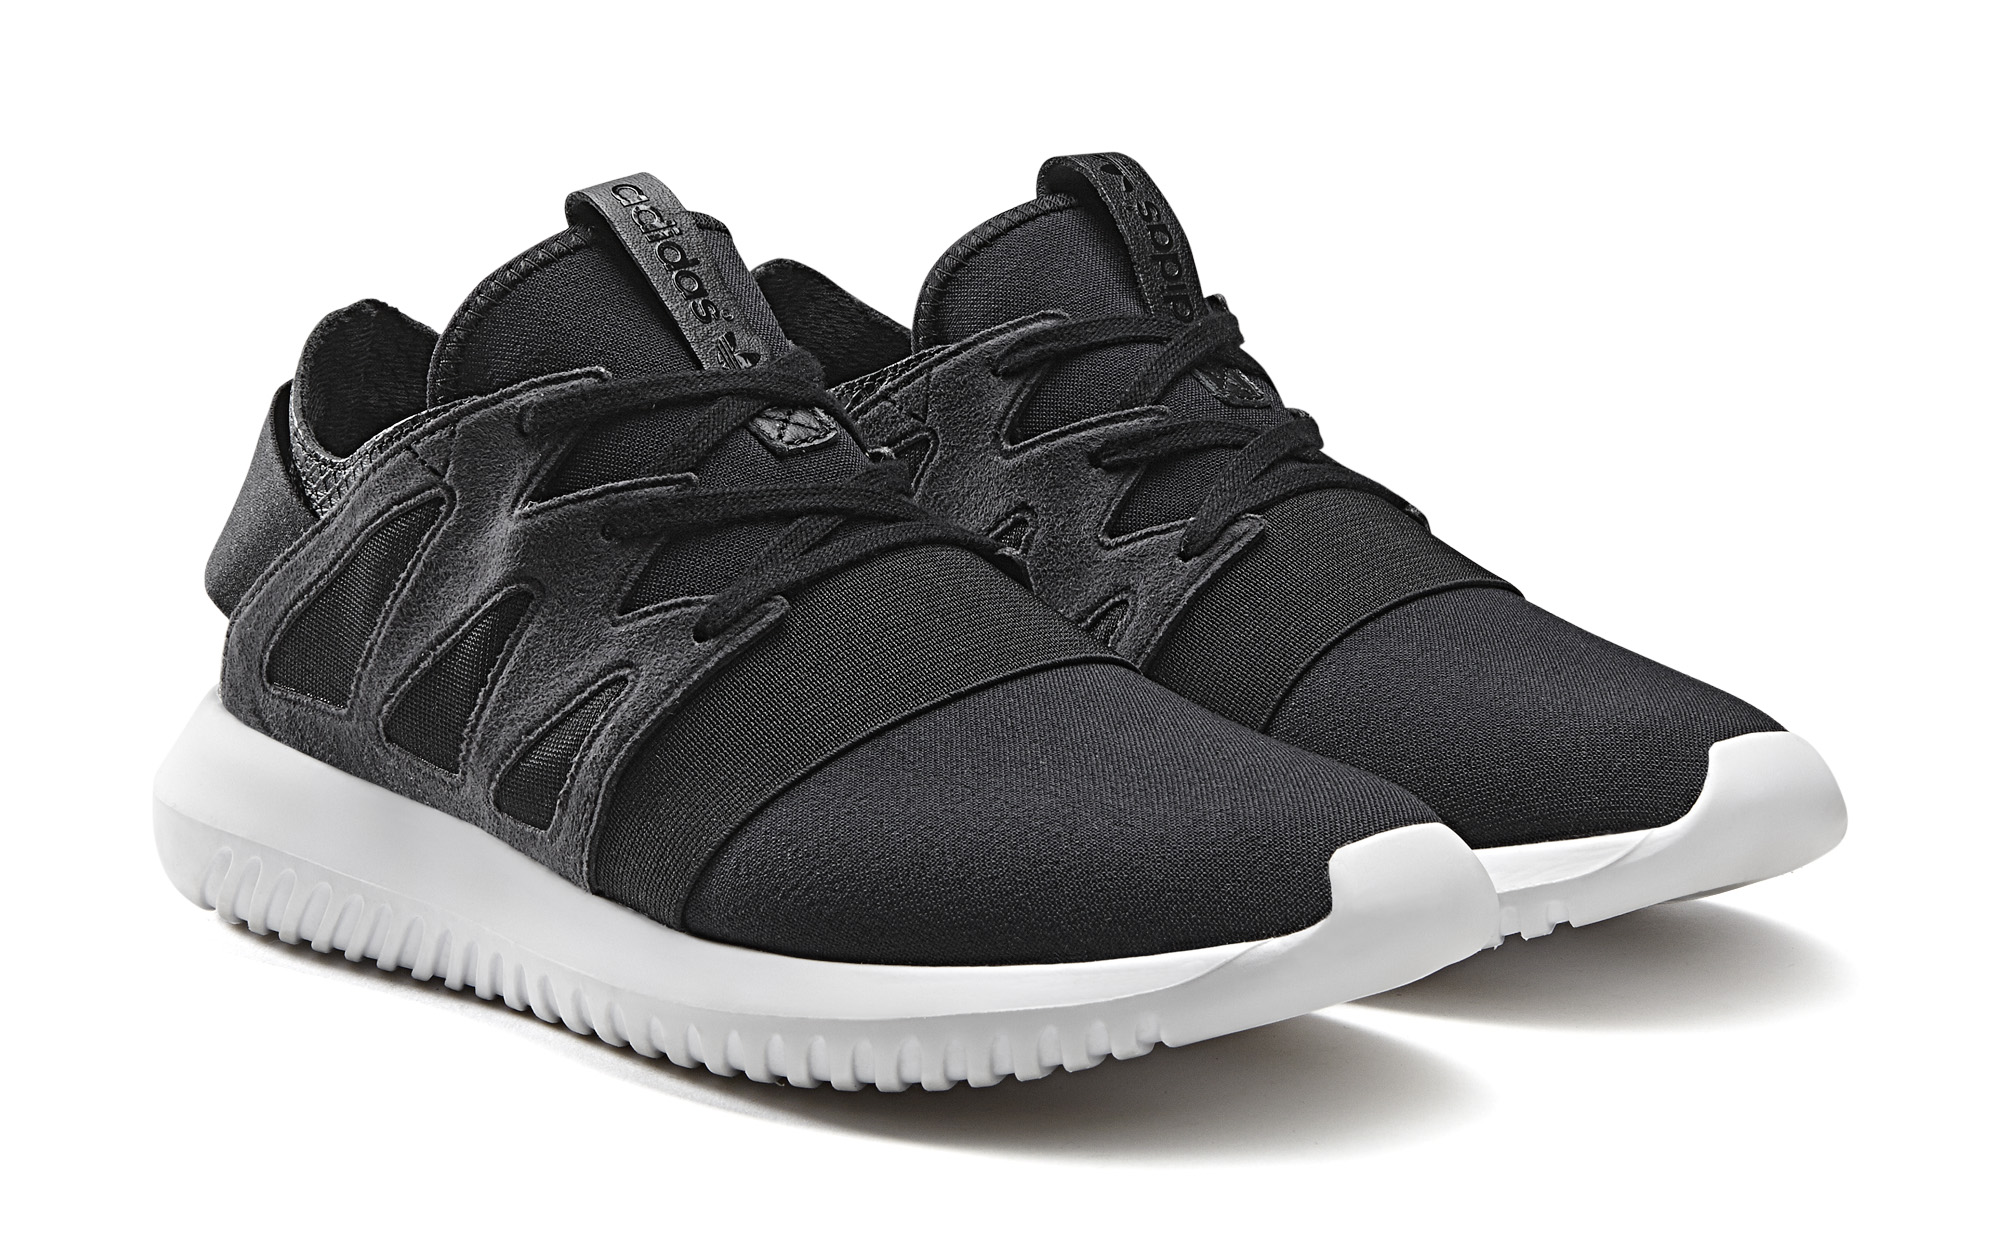 Adidas Tubular Viral W Women US 10 Black SNEAKERS